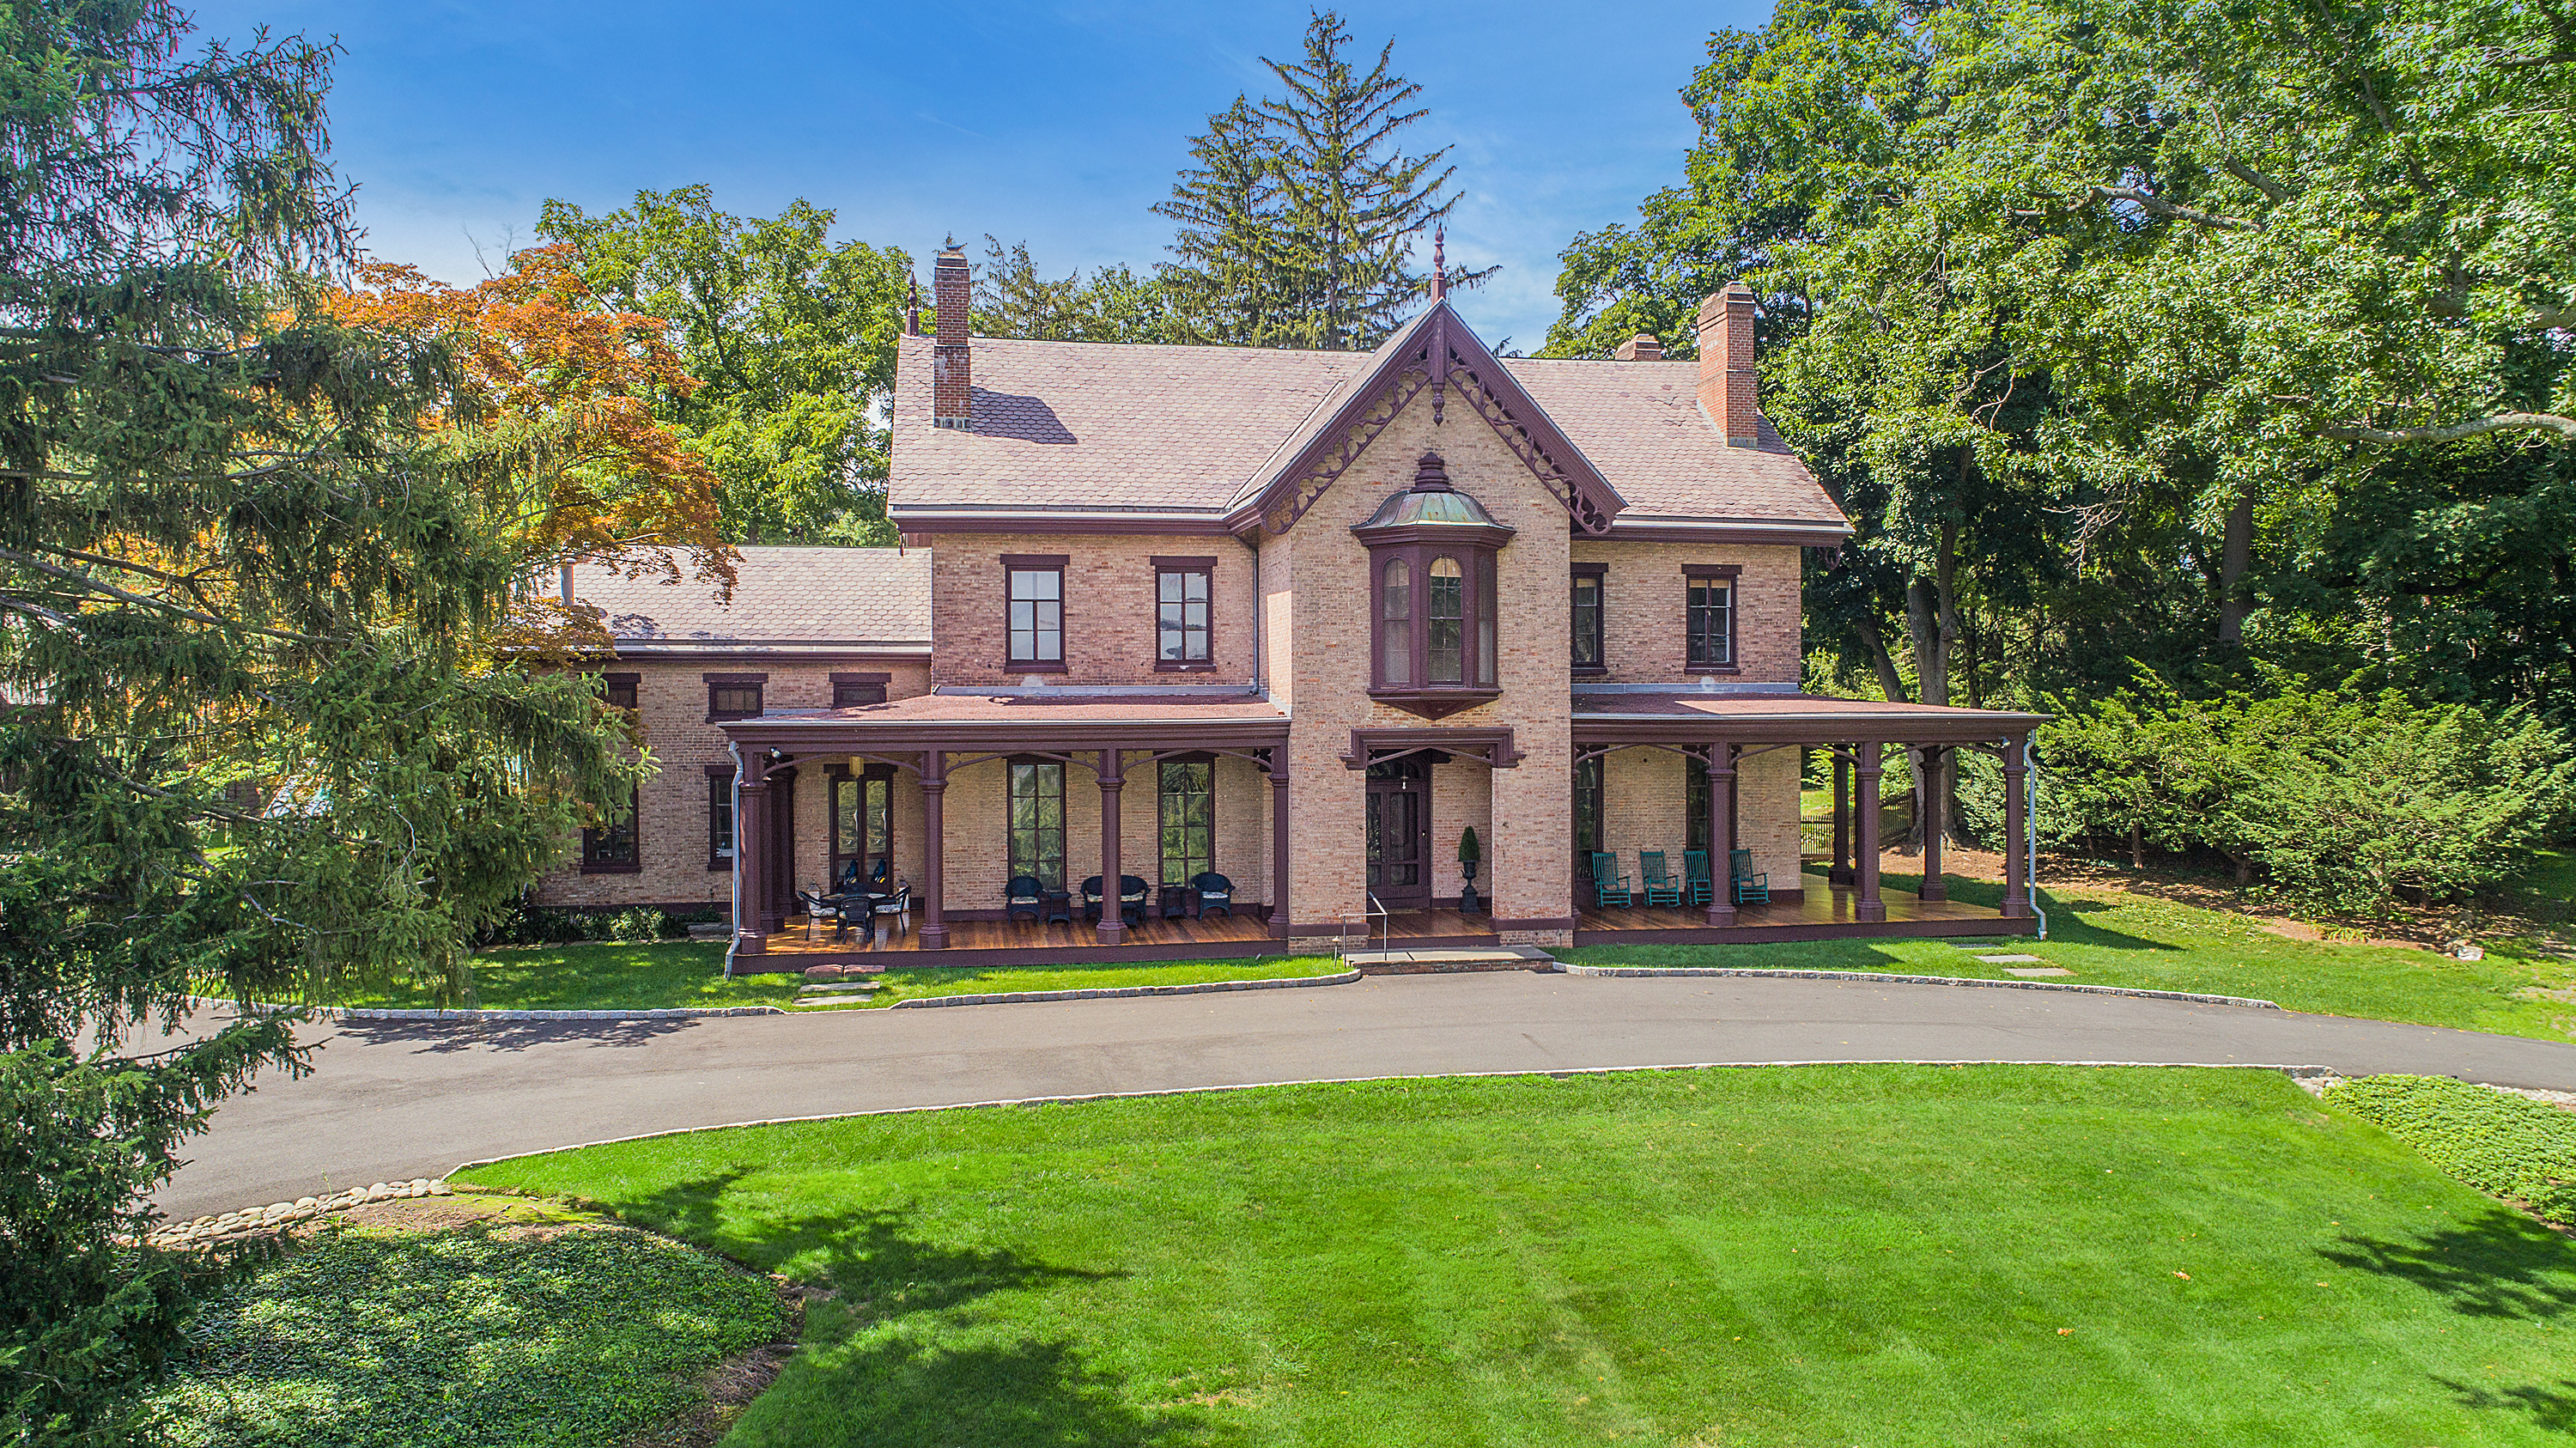 The Ross Hand Mansion 122 S Franklin  Nyack 10960 For Sale by Donna Cox Better Homes and Gardens Rand Realty donnacox.com